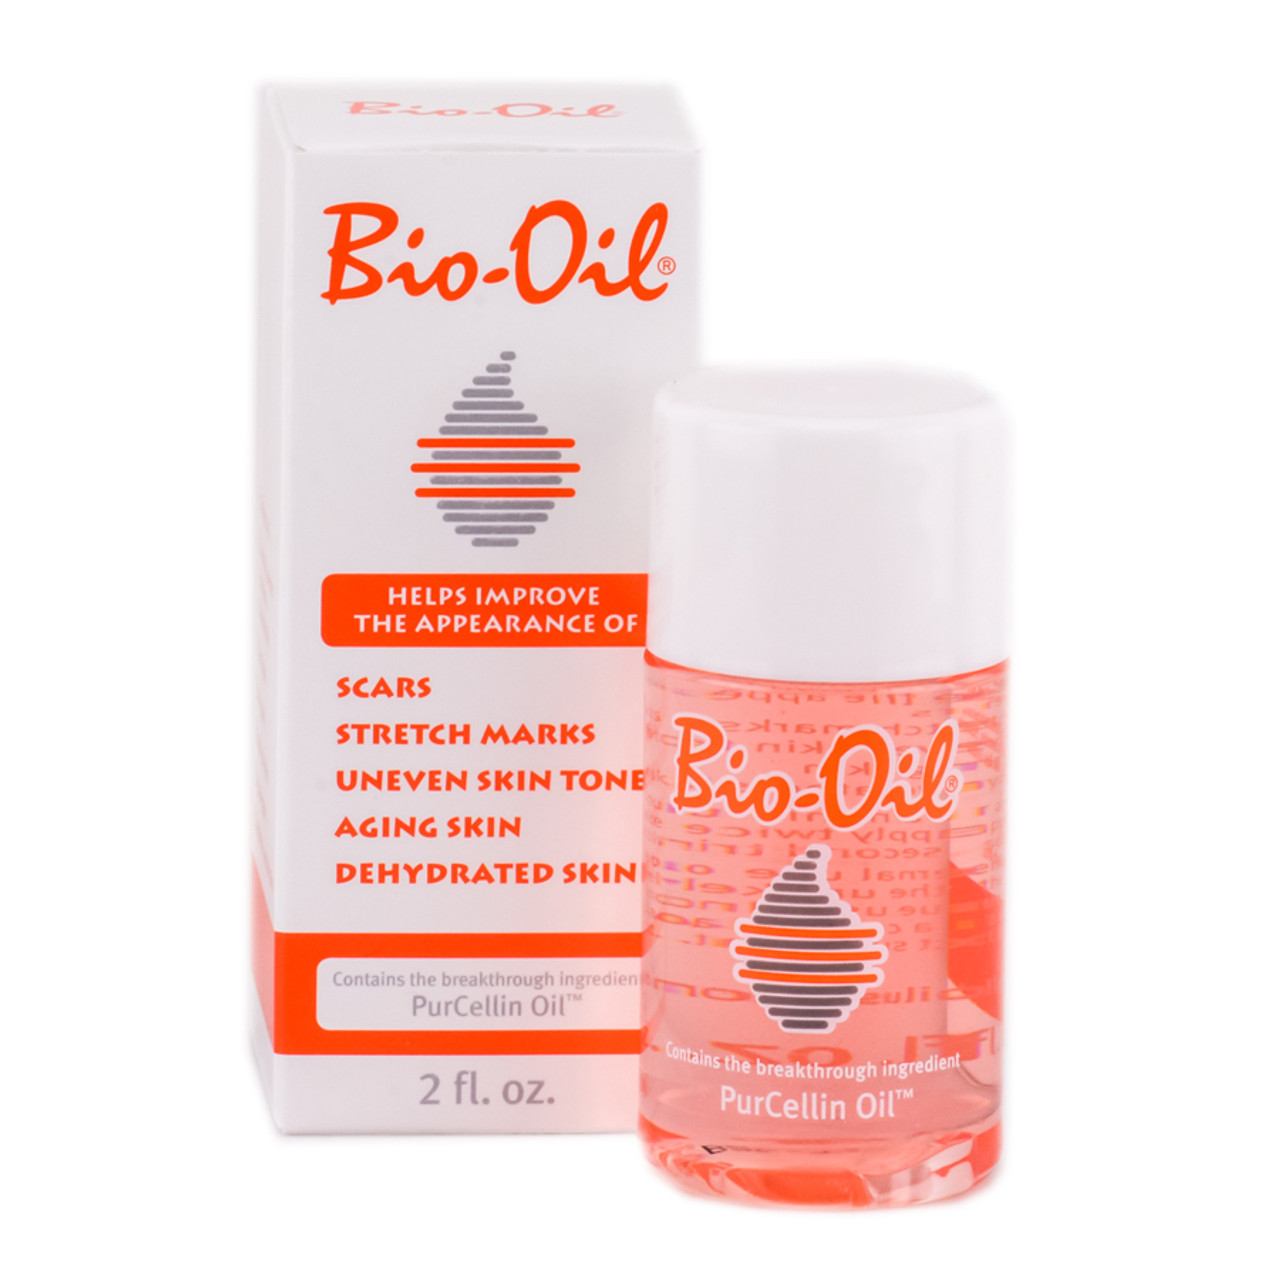 bio oil purcellin oil formerly sleekhair. Black Bedroom Furniture Sets. Home Design Ideas